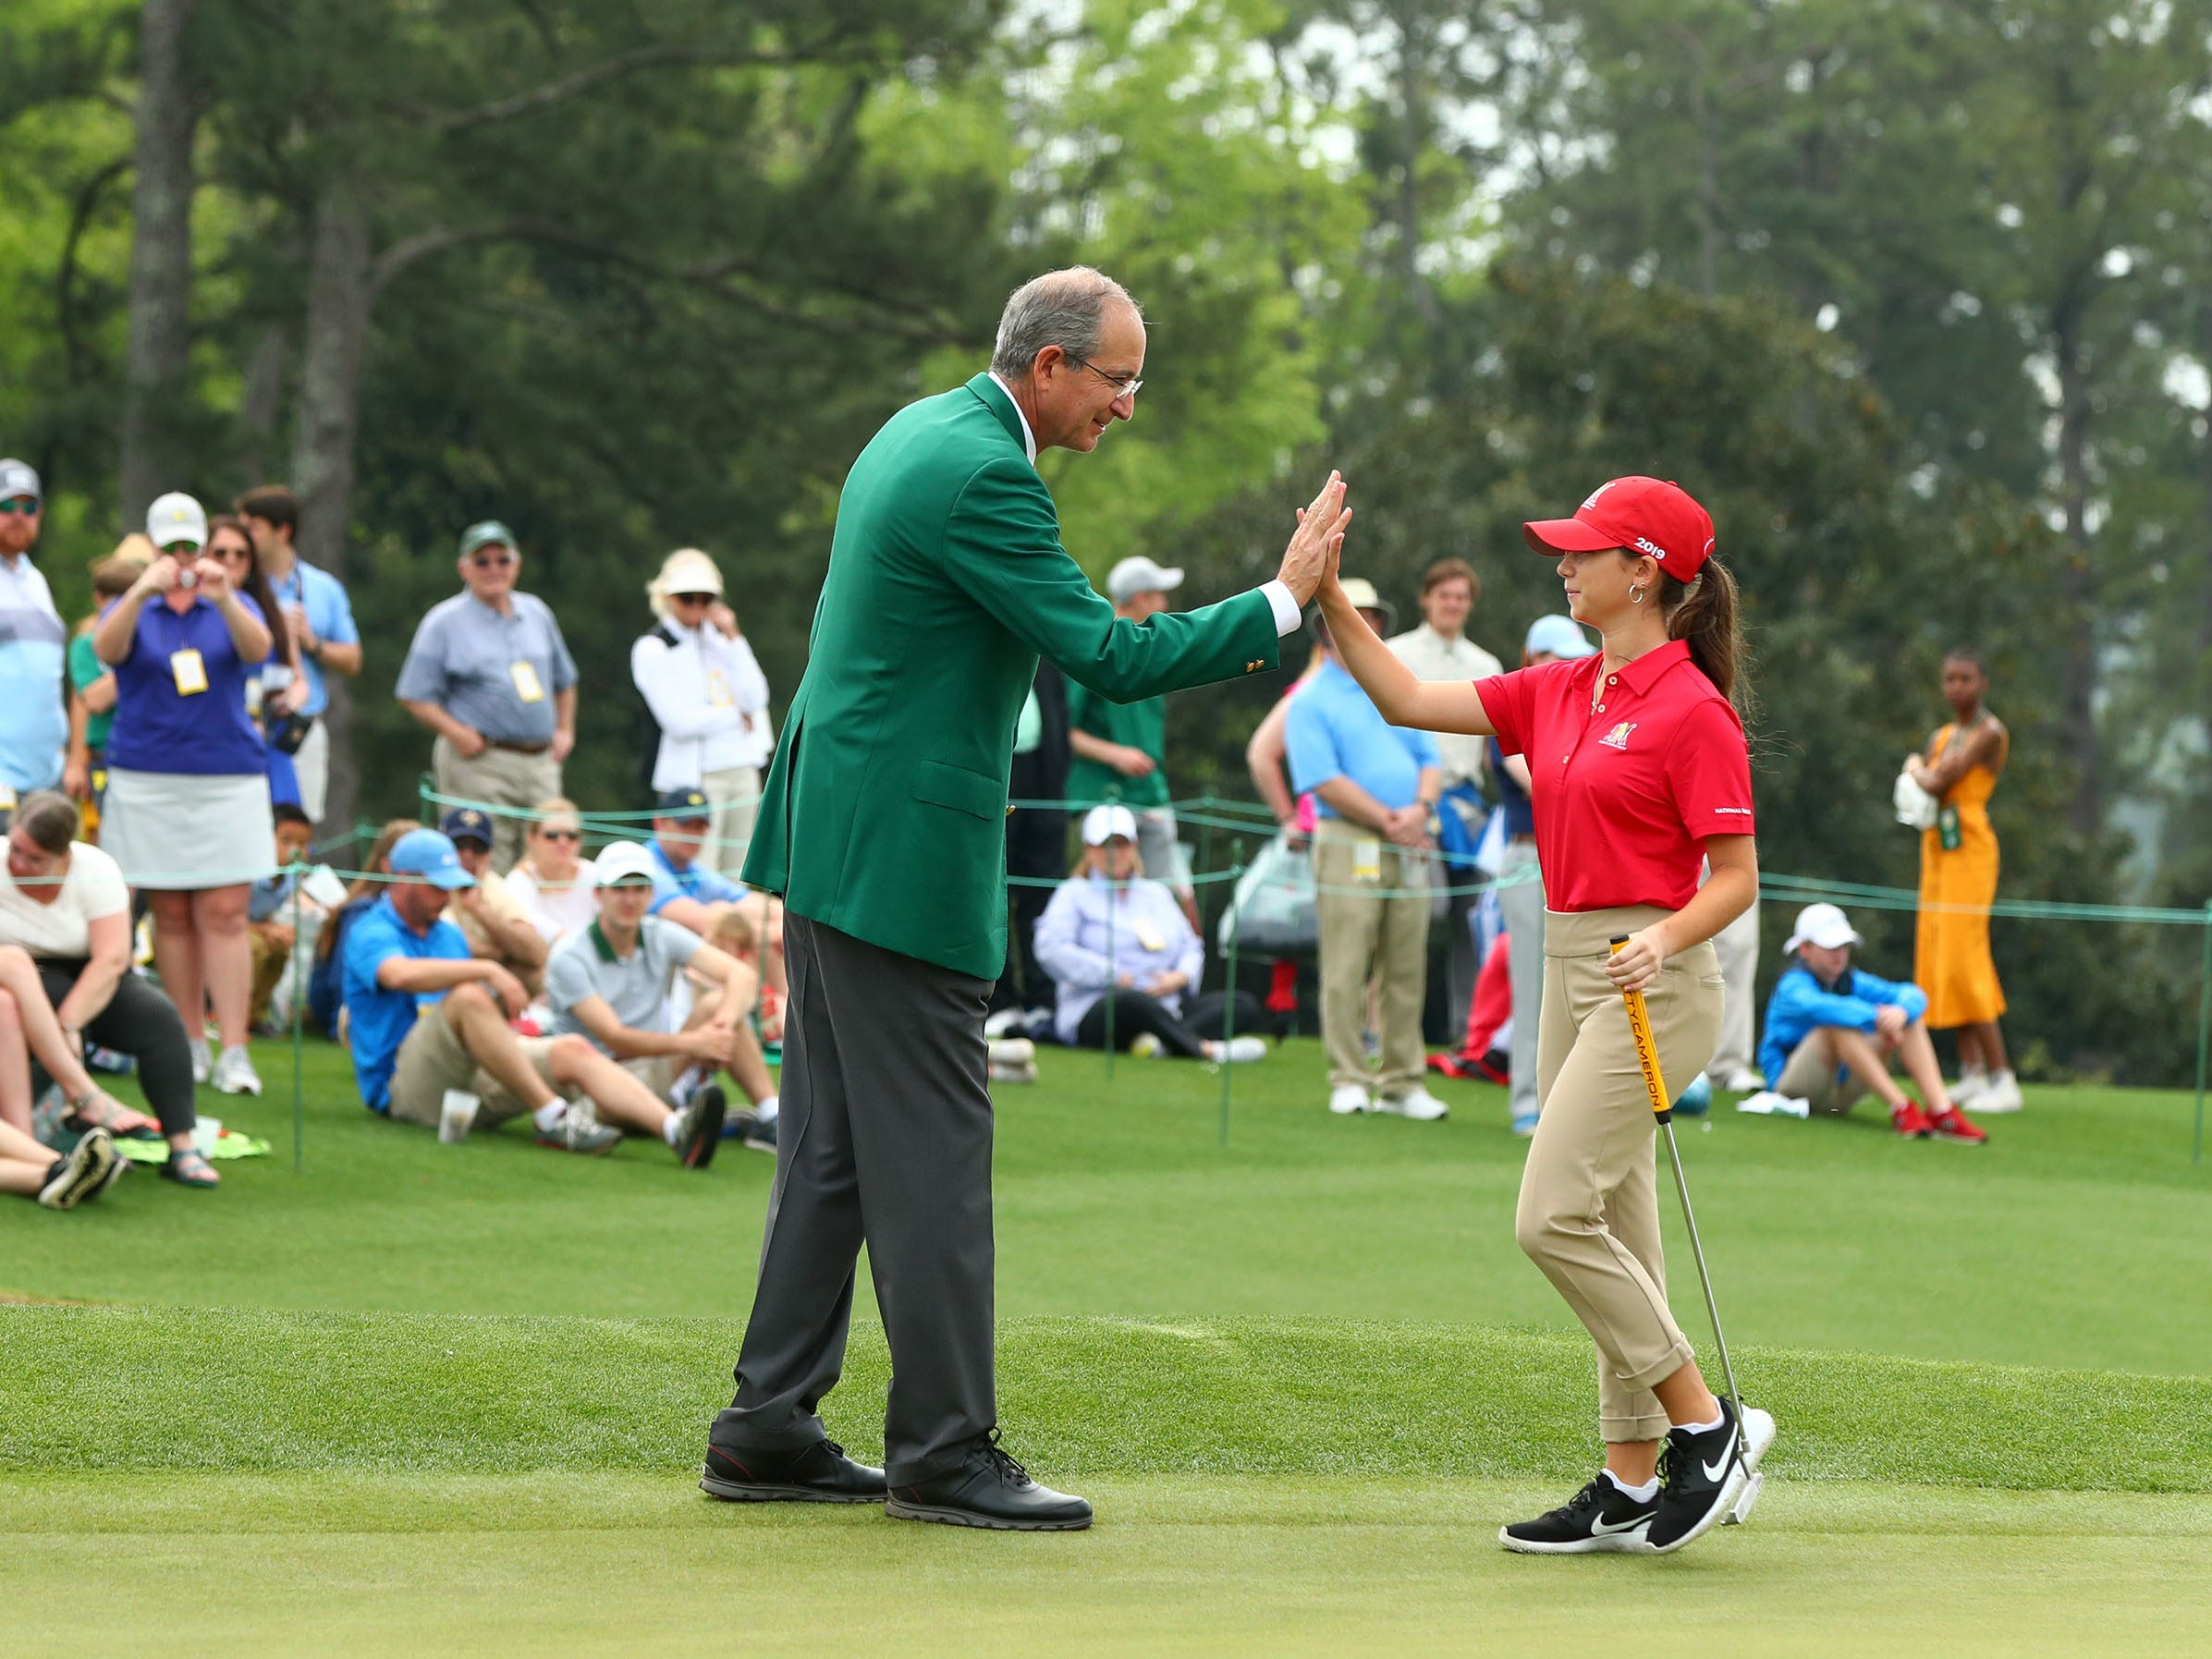 Apr 7, 2019: Hall of Fame golfer Nancy Lopez and Augusta National member Brian L. Roberts  congratulate Talia Rodino of Fort Myers, Fla. in the girls 14-15 age group during the finals of the Drive, Chip and Putt competition at Augusta National Golf Club.